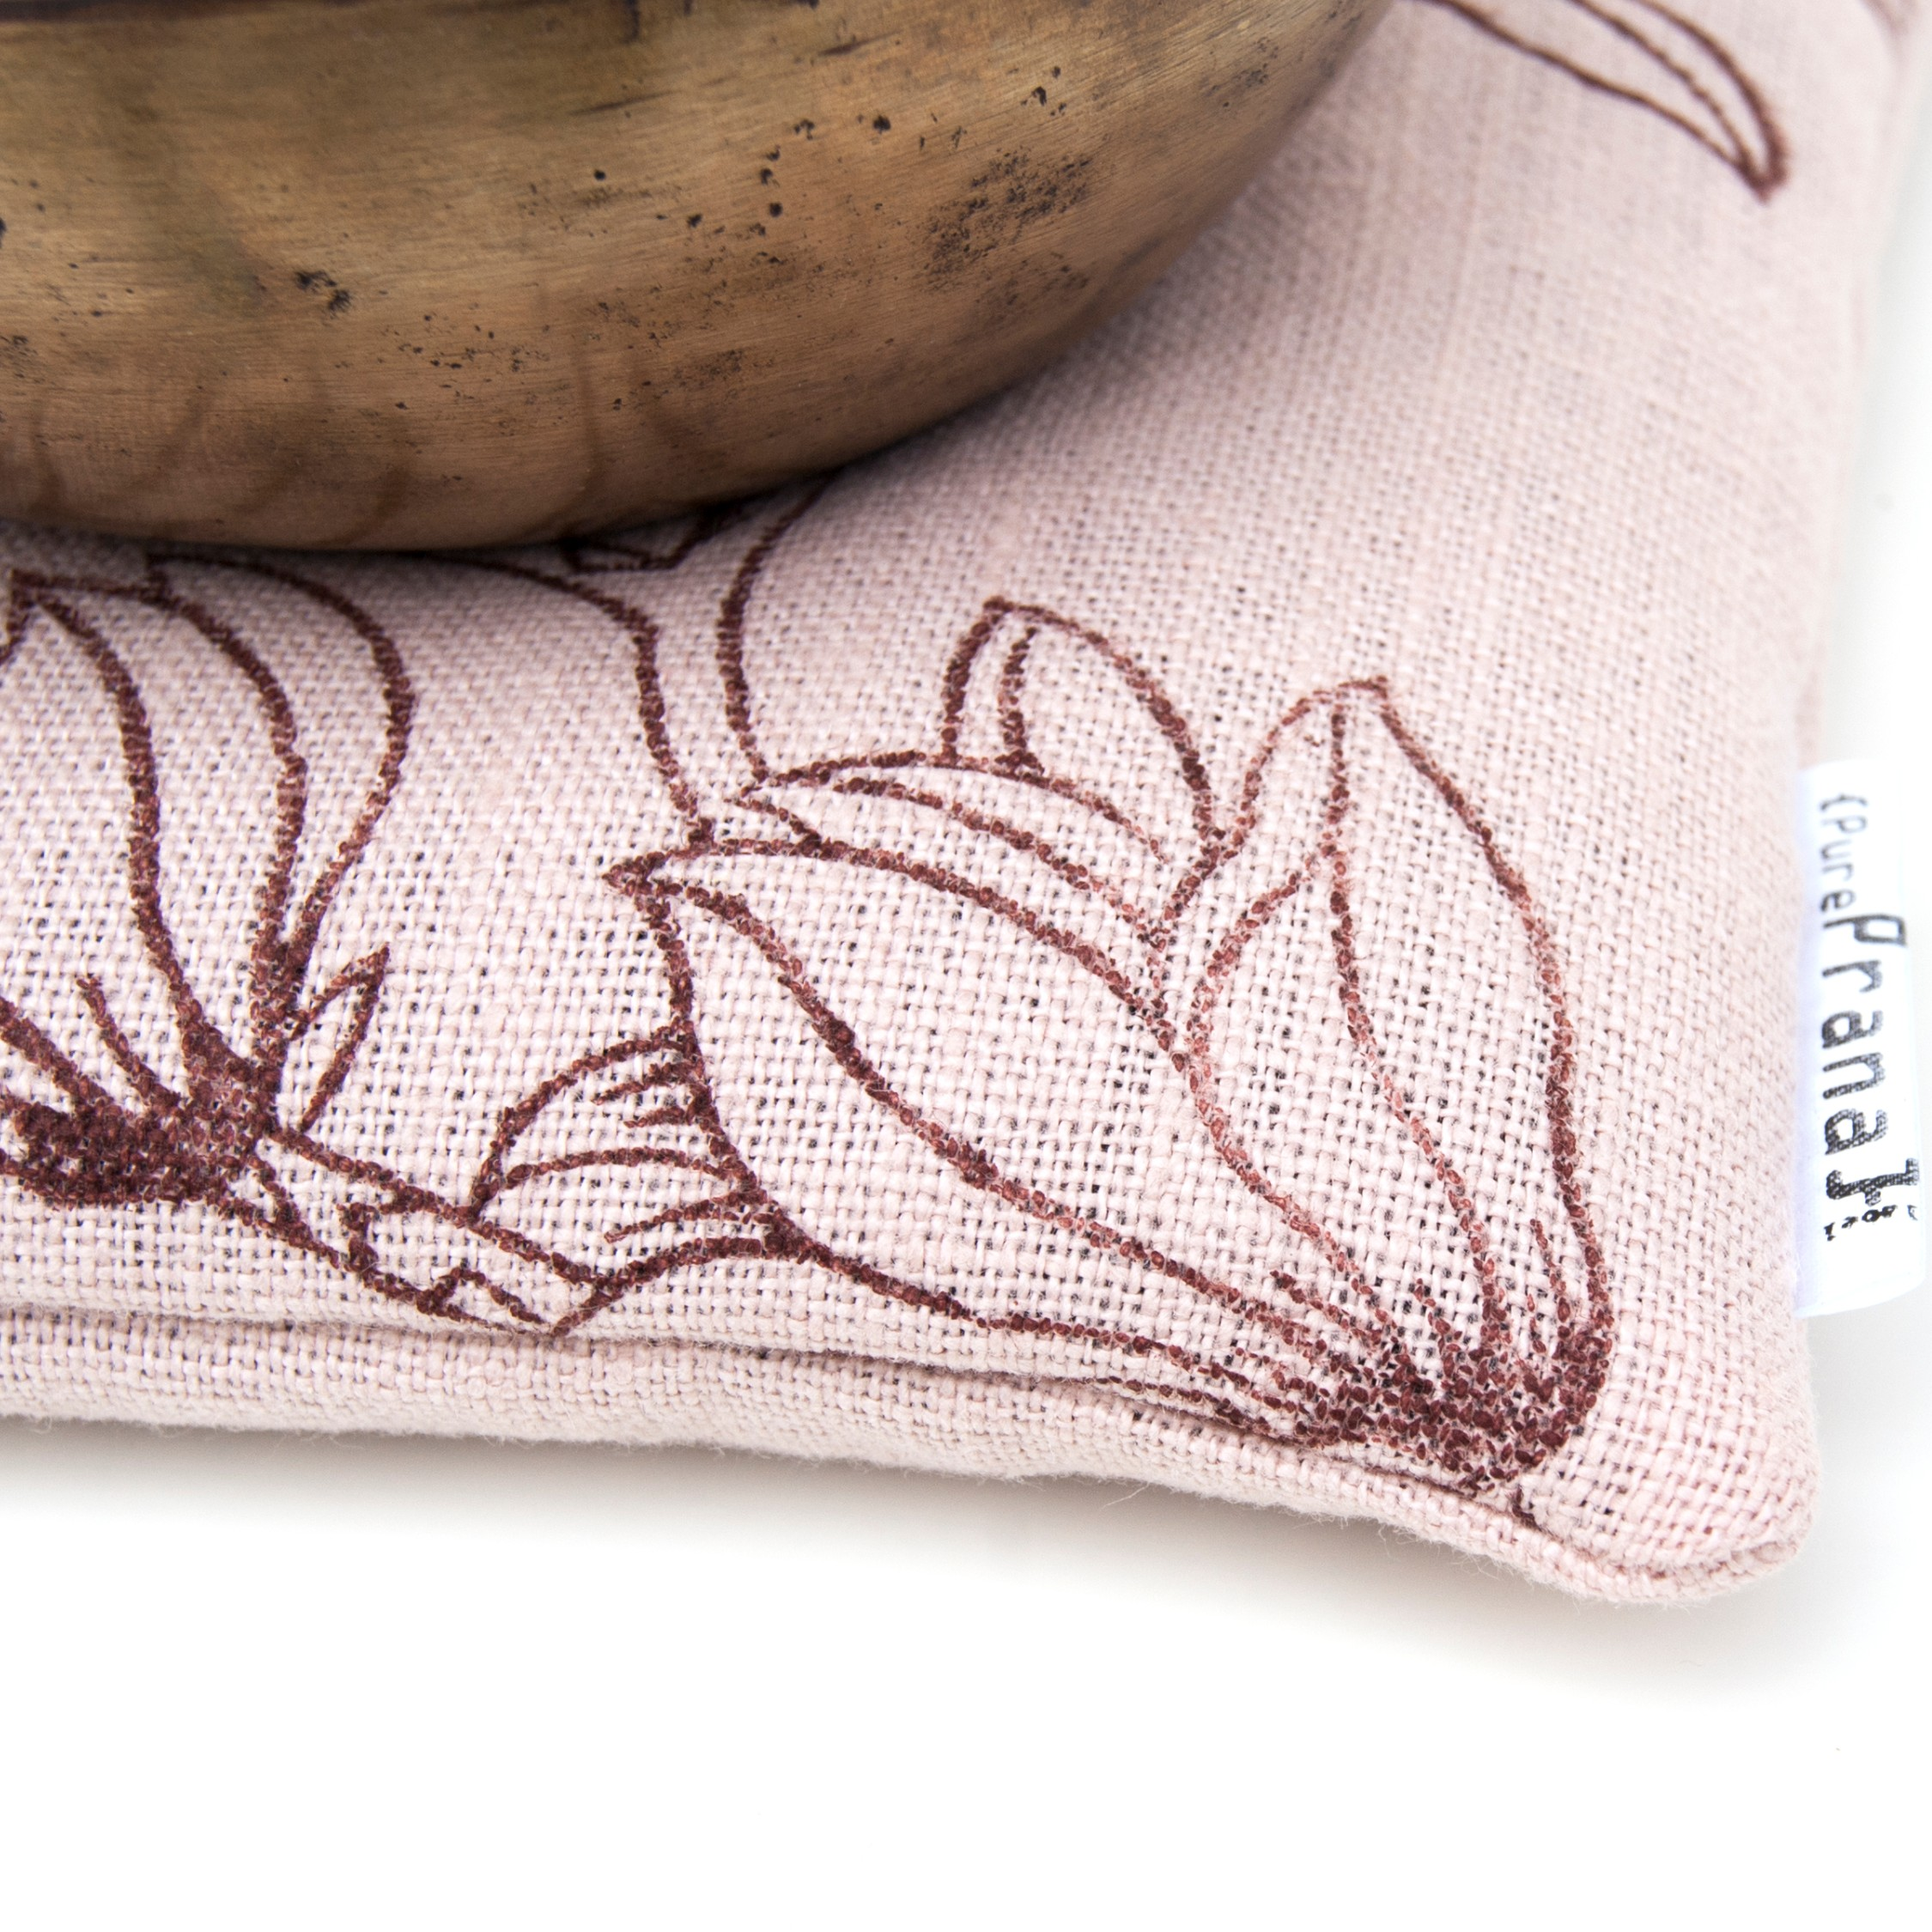 Magnolia singing bowl cushion